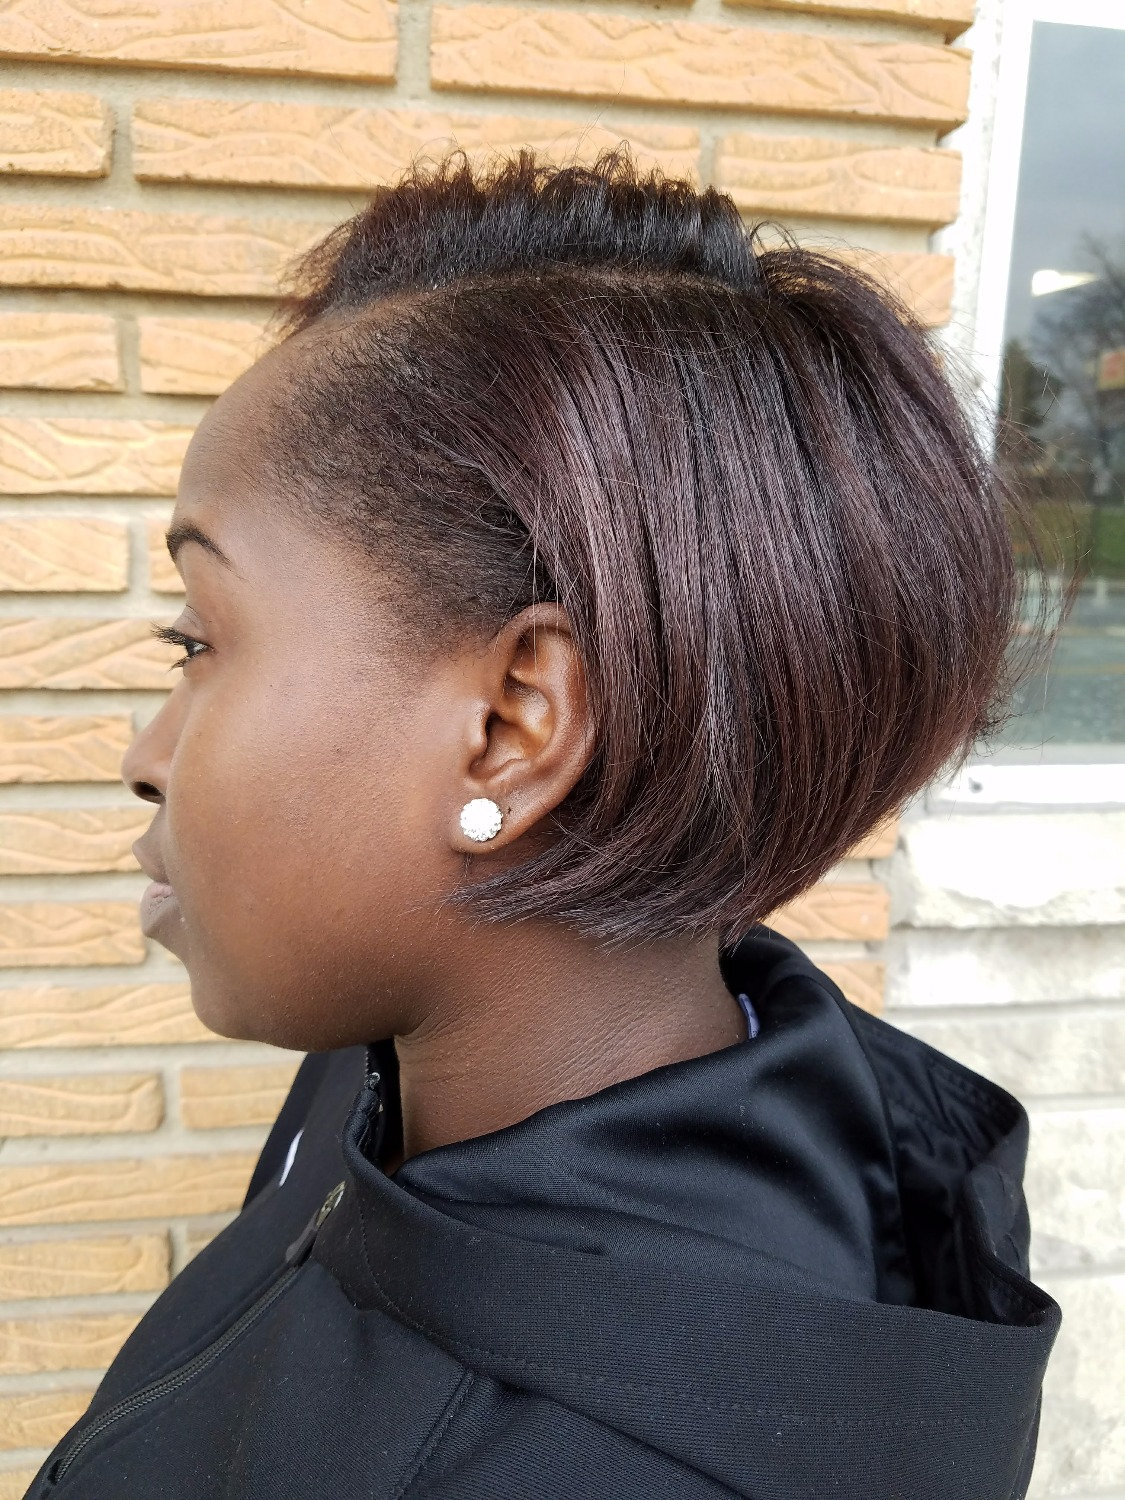 Sculpting *Hair Cut* and Style